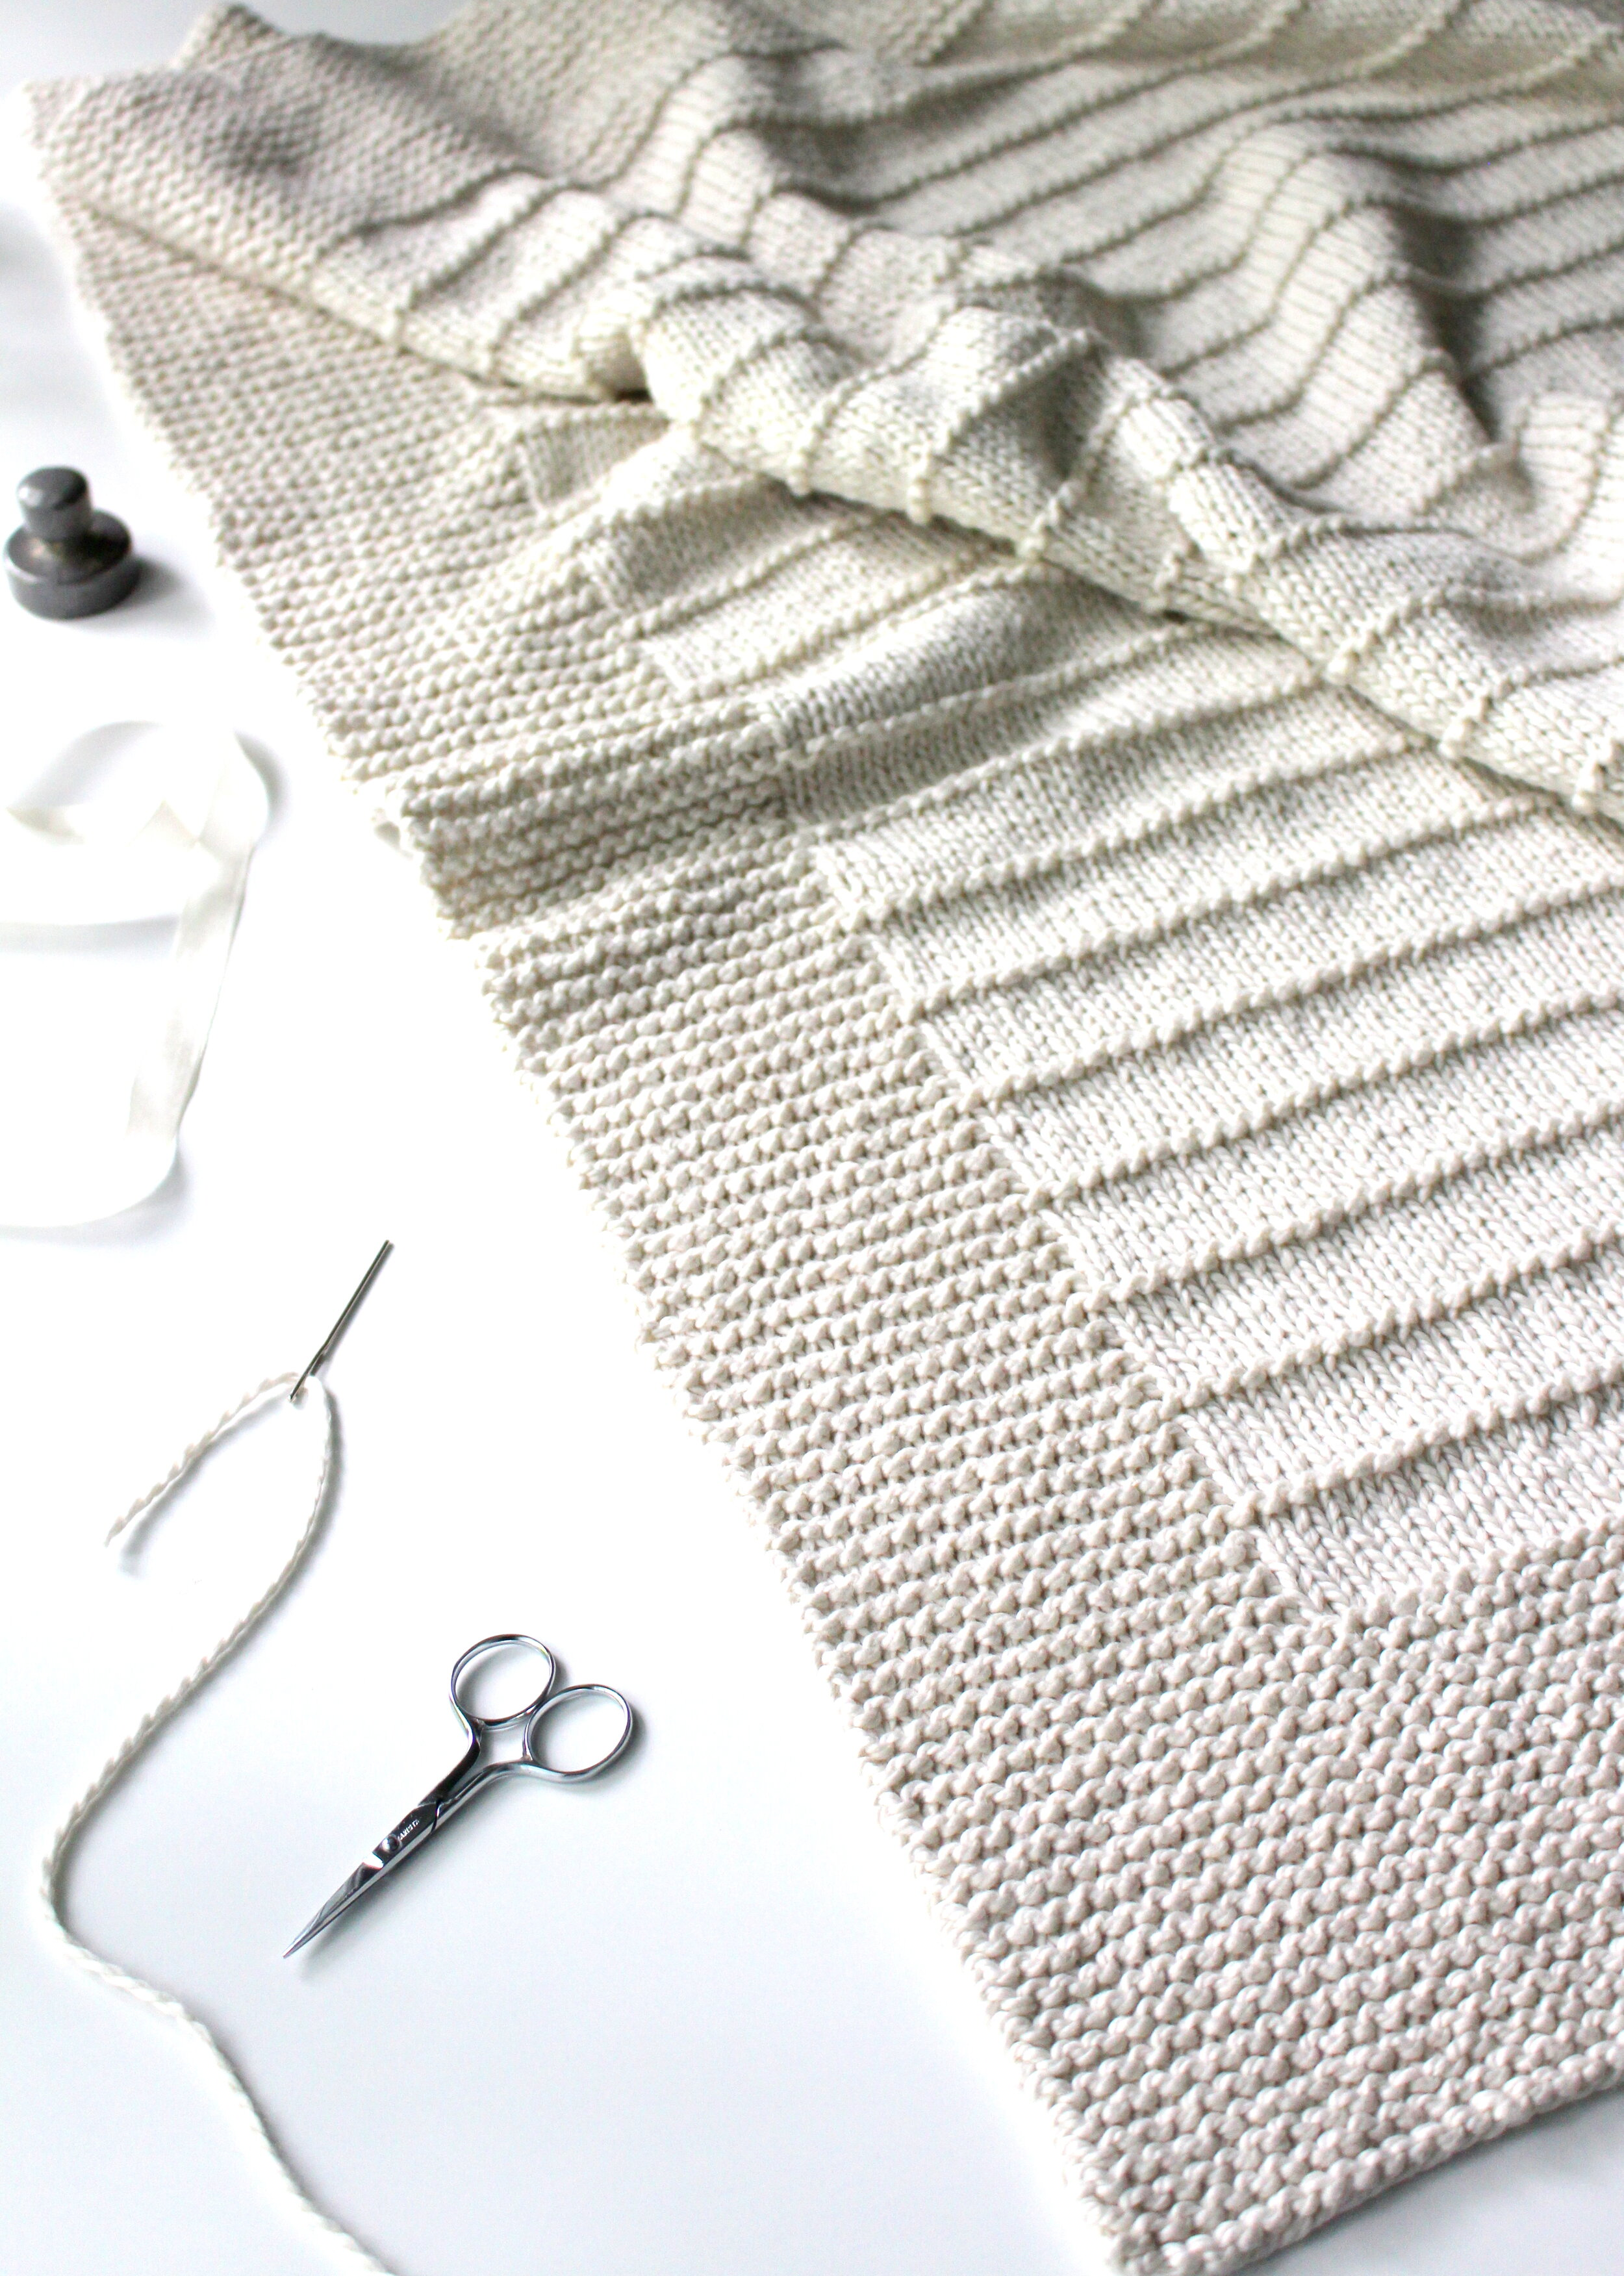 Easy To Knit Beginner Blanket Knitting Pattern For Worsted Weight Yarn On The Porch Blanket Fifty Four Ten Studio